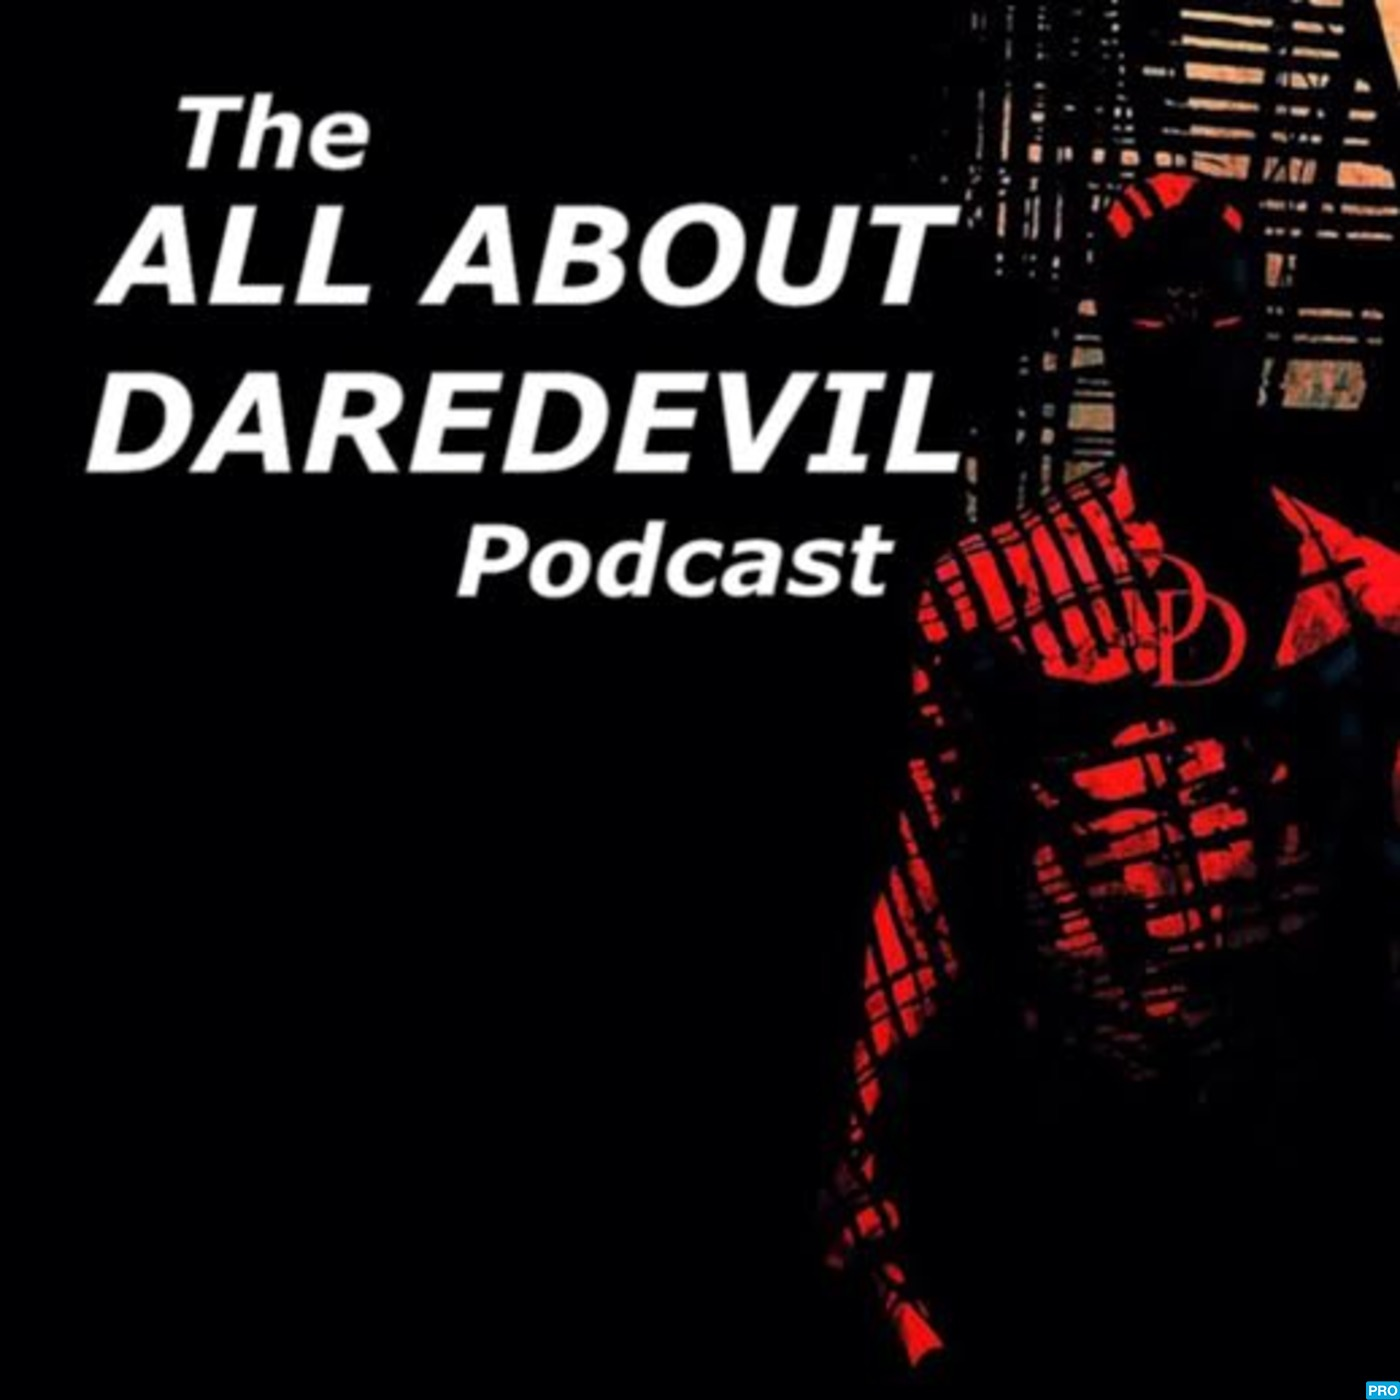 Daredevil Prophet's Podcast